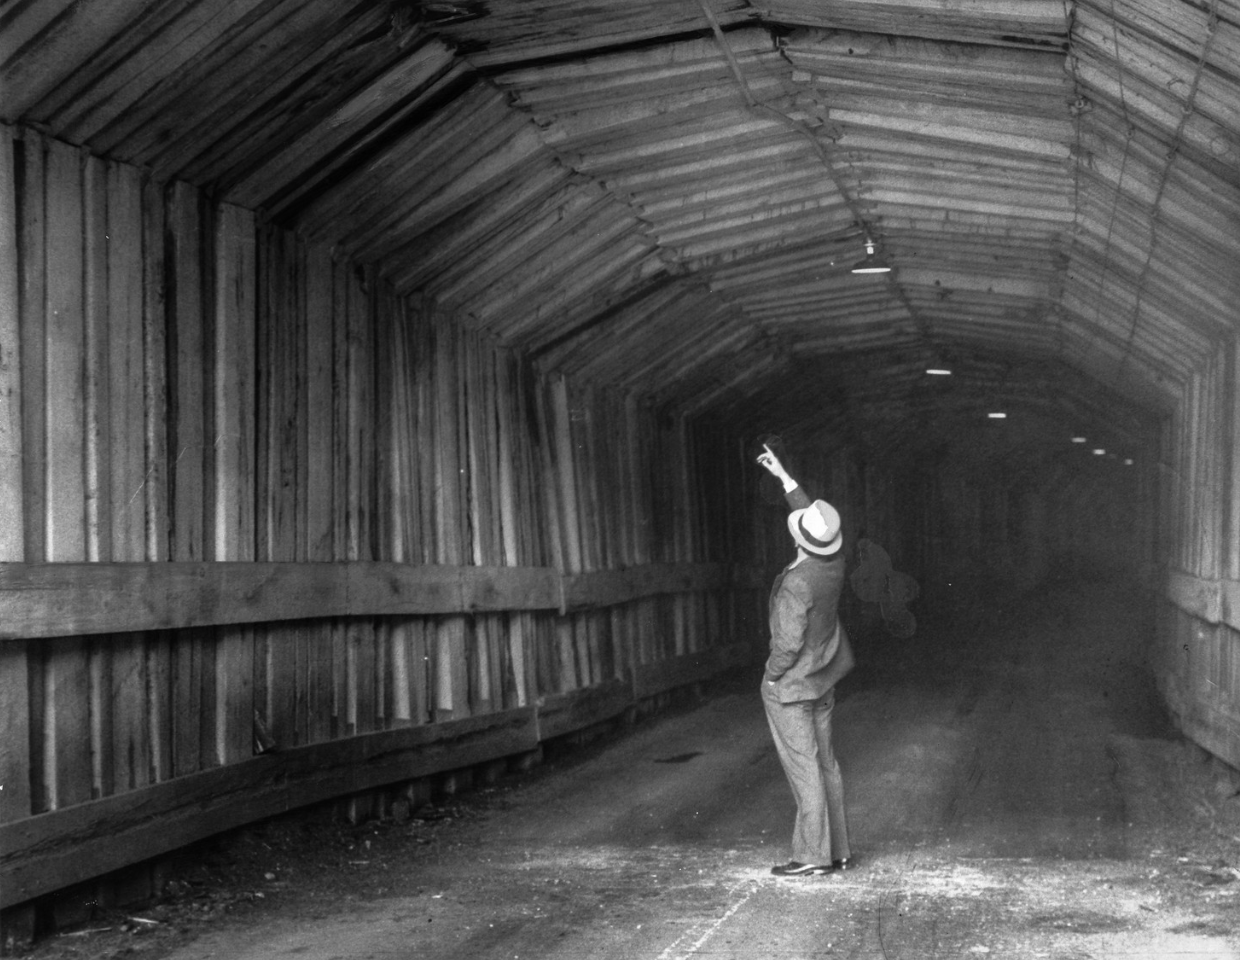 March 10, 1934 - A man points to dark spots in the ceiling of the old tunnel where timbers fell earlier in the day. They had weakened by years of water damage. (Oakland Tribune Photo)